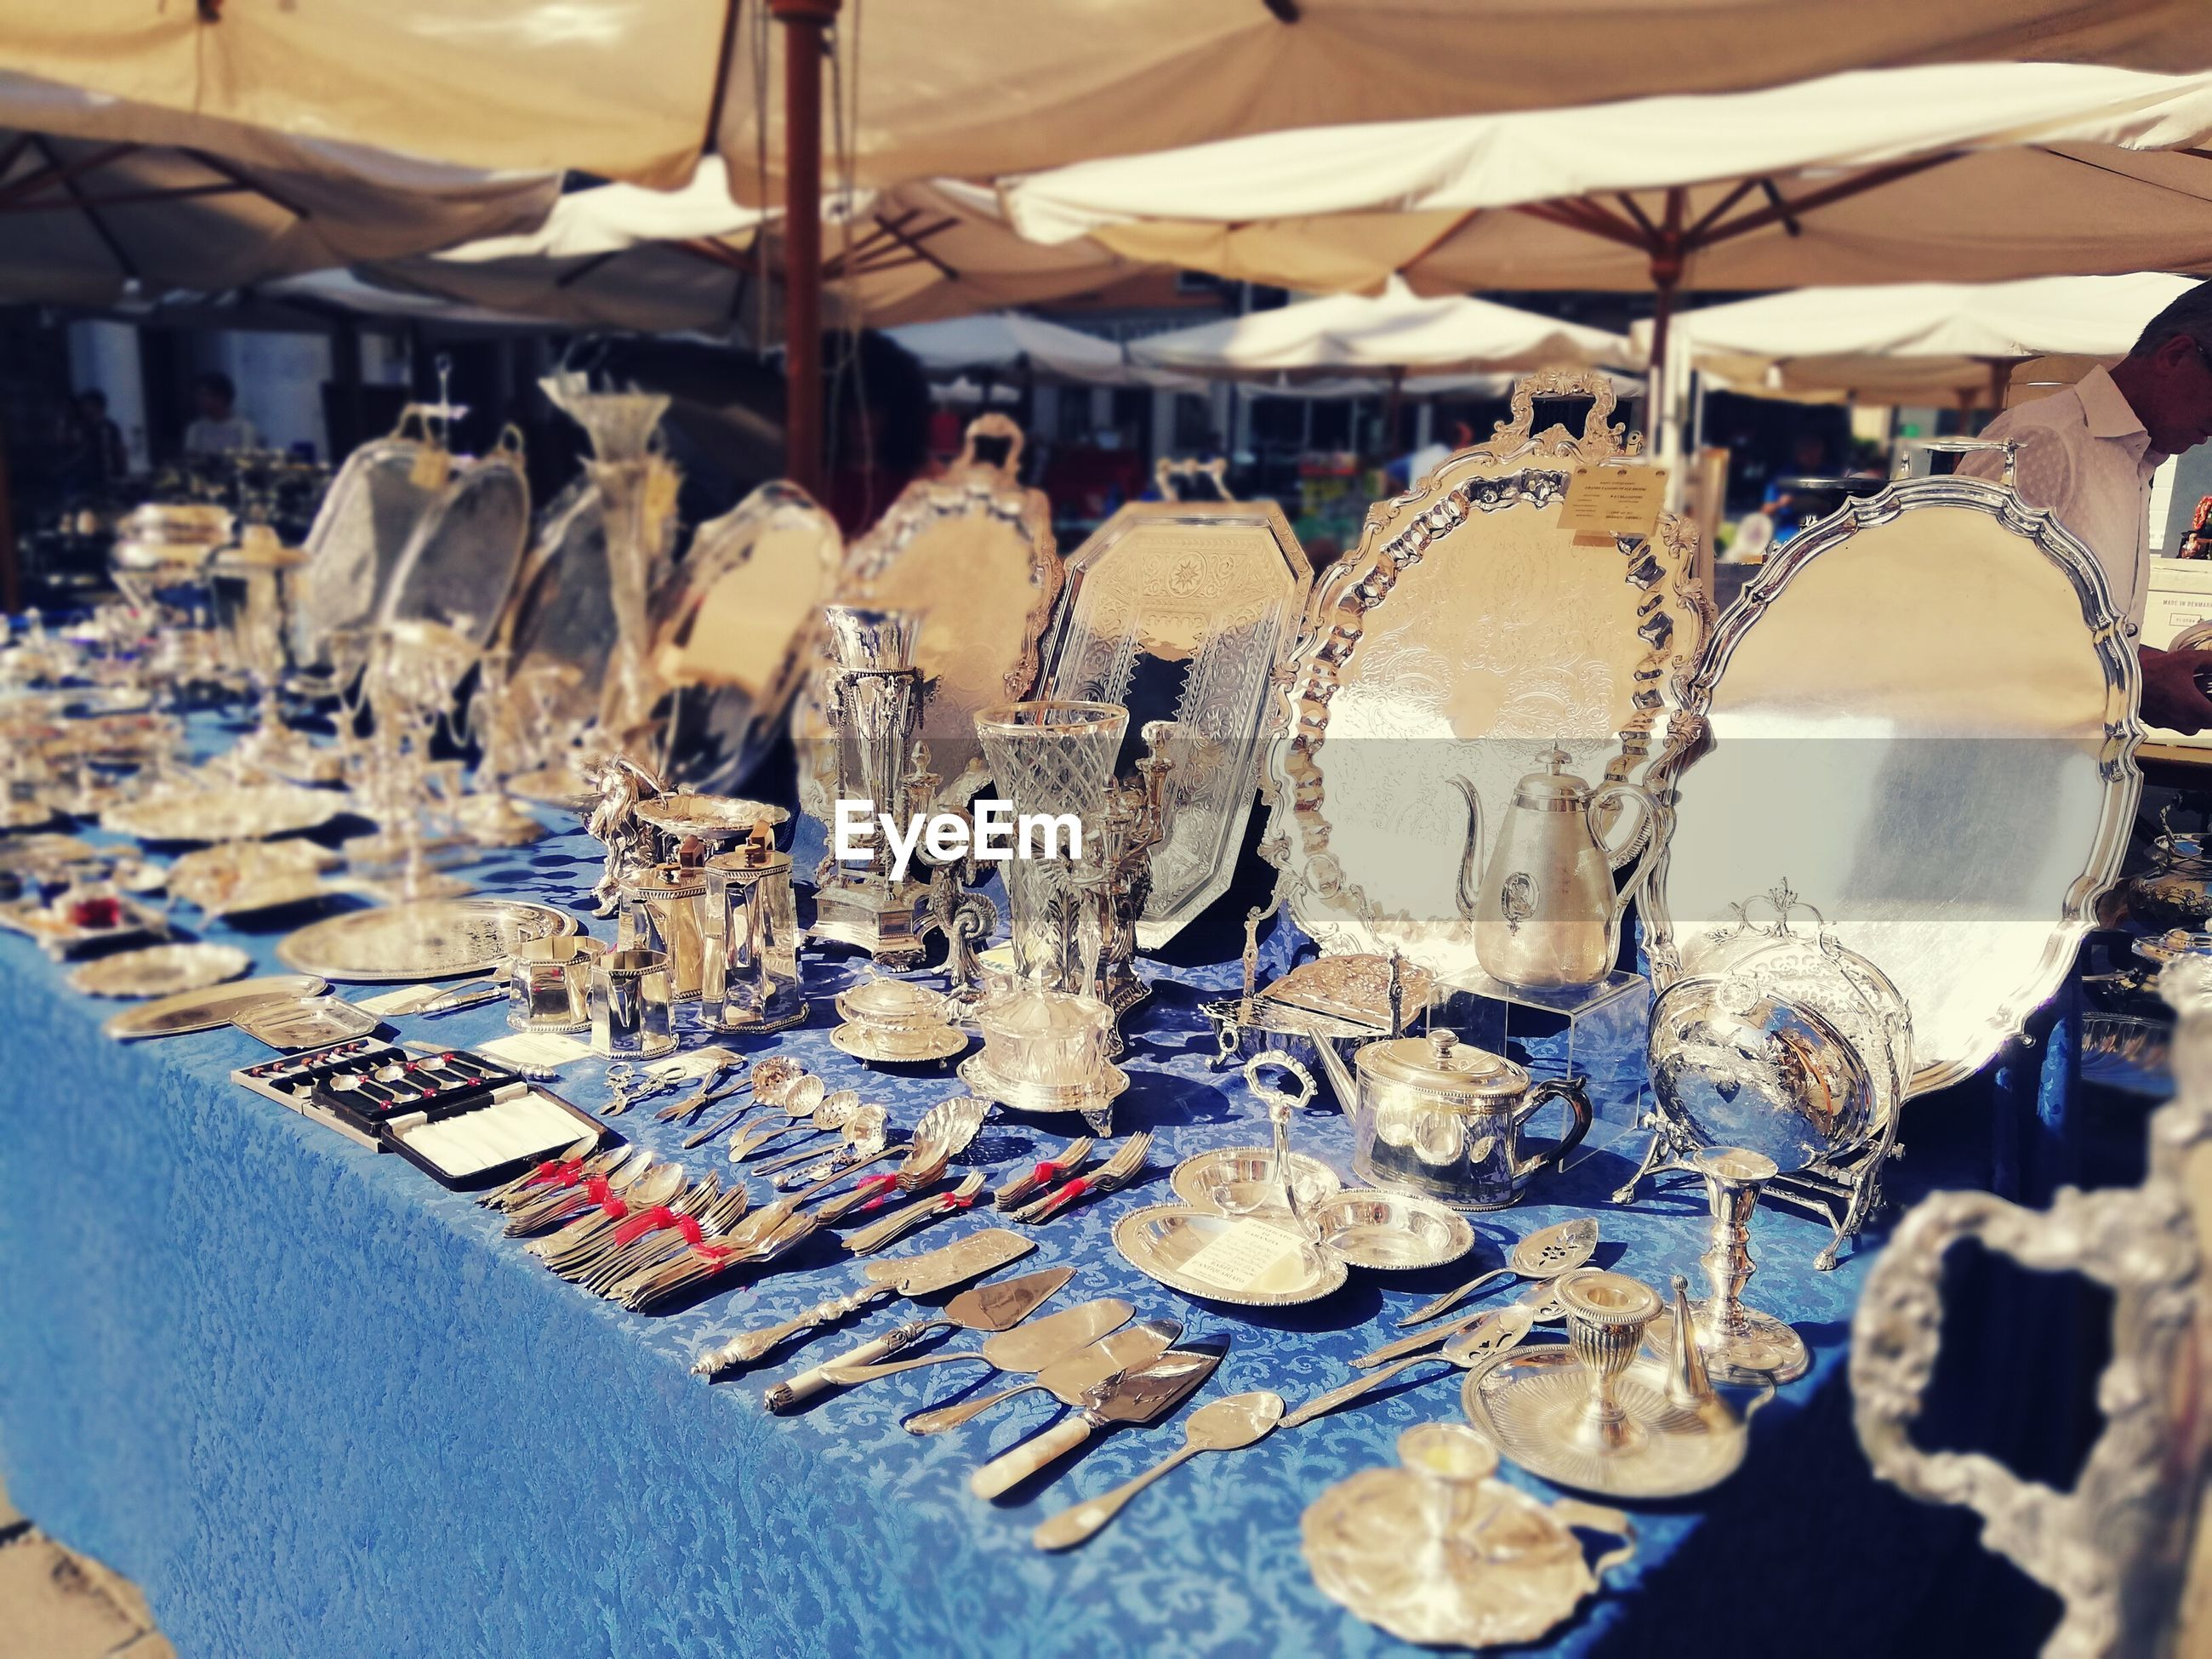 High angle view of kitchen utensils arranged on table for sale in market